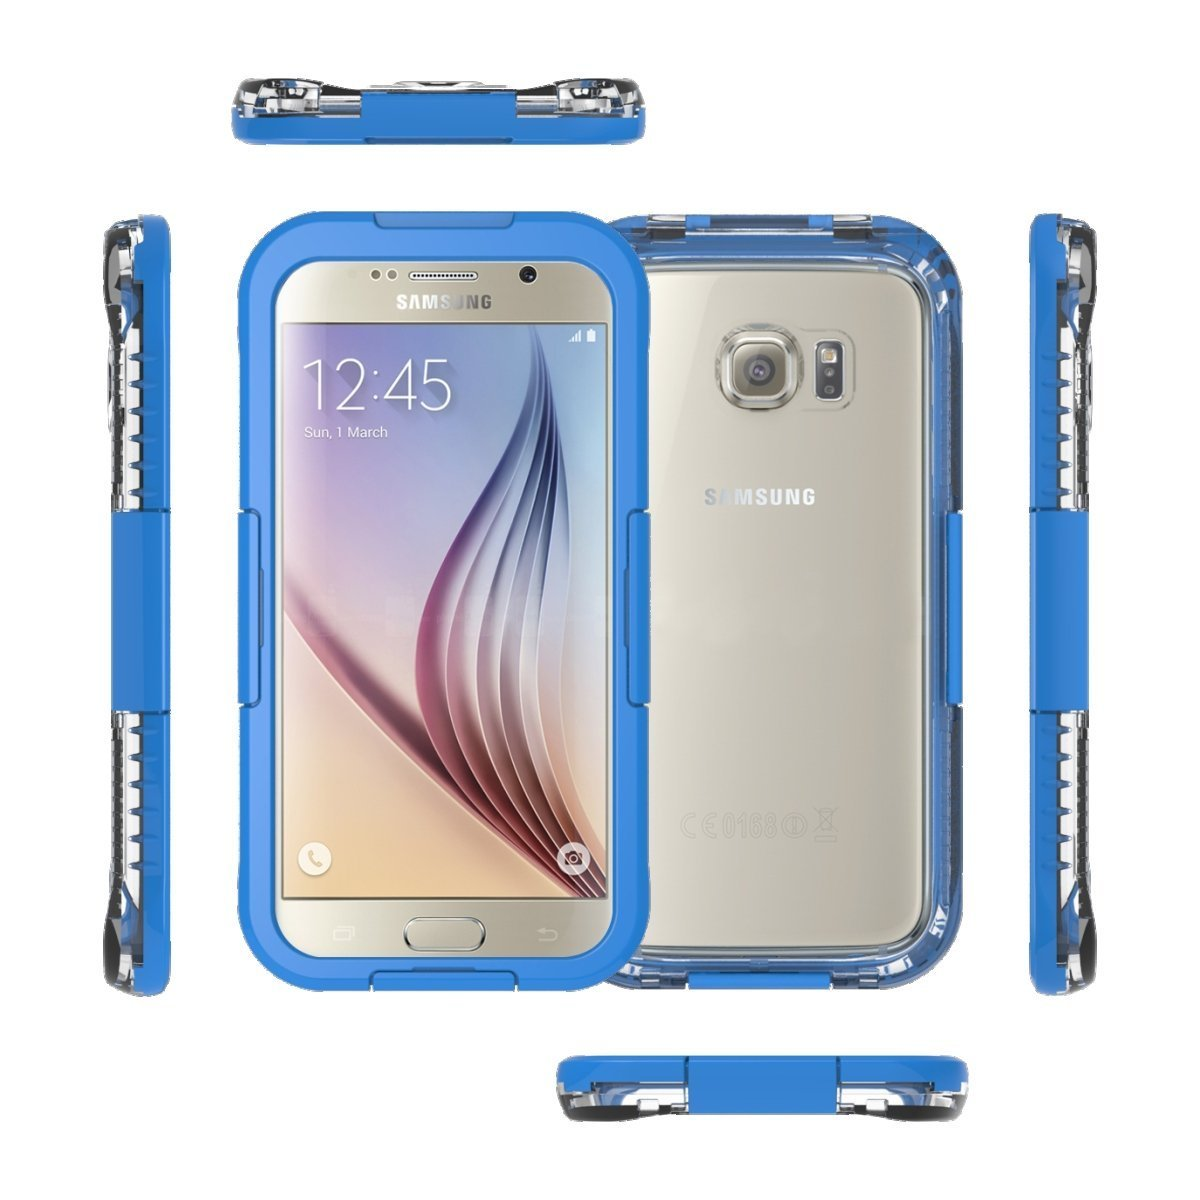 Galaxy S6 Waterproof Case Dust Proof Shock Lifeproof Samsung Fre 77 51242 Black With Touched Transparent Screen Protector Up To 20ft